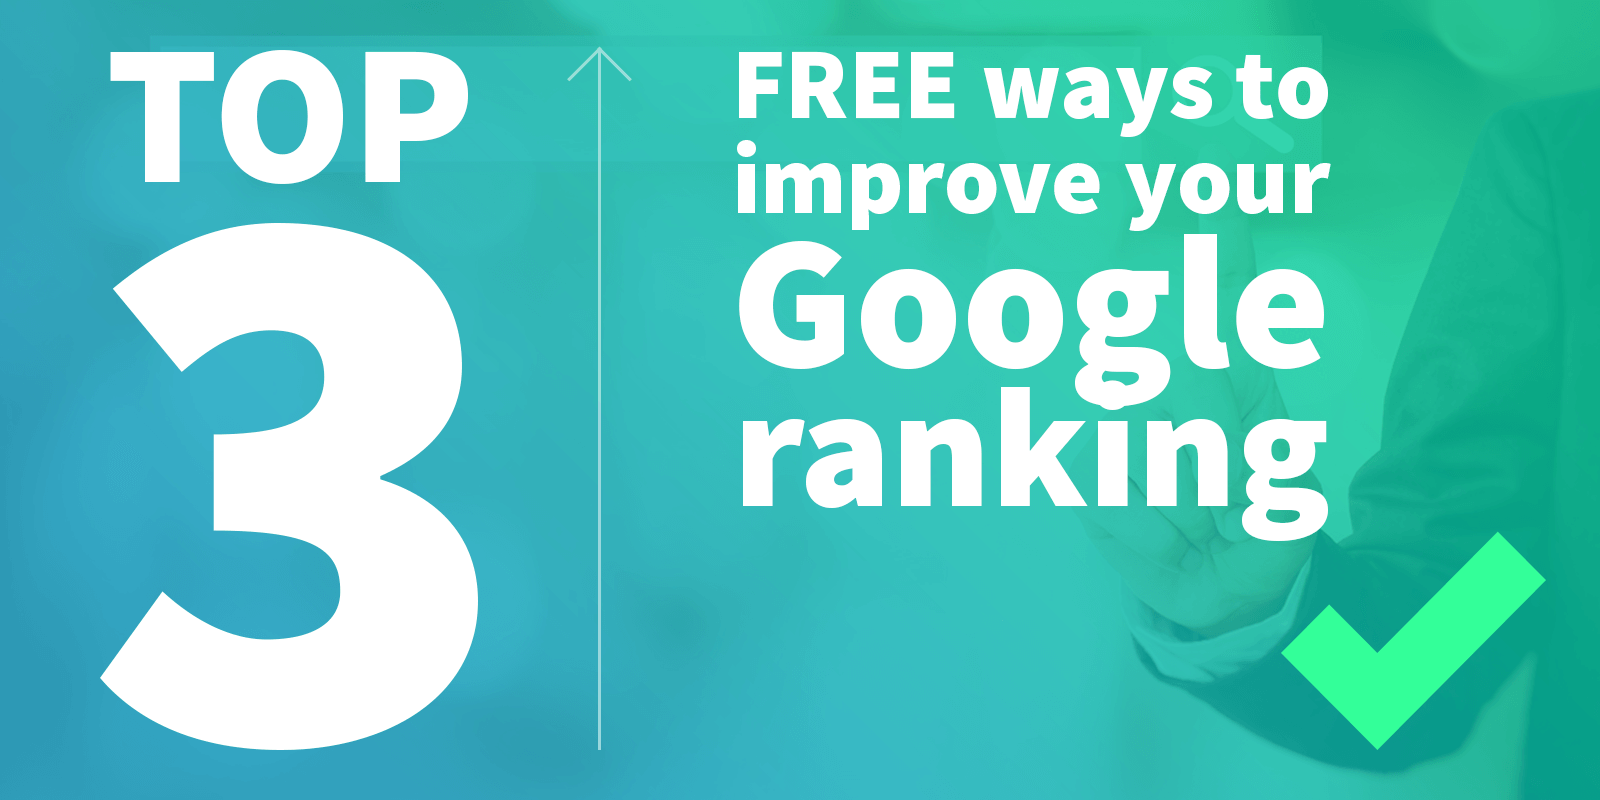 Top 3 free ways to improve your website's Google ranking